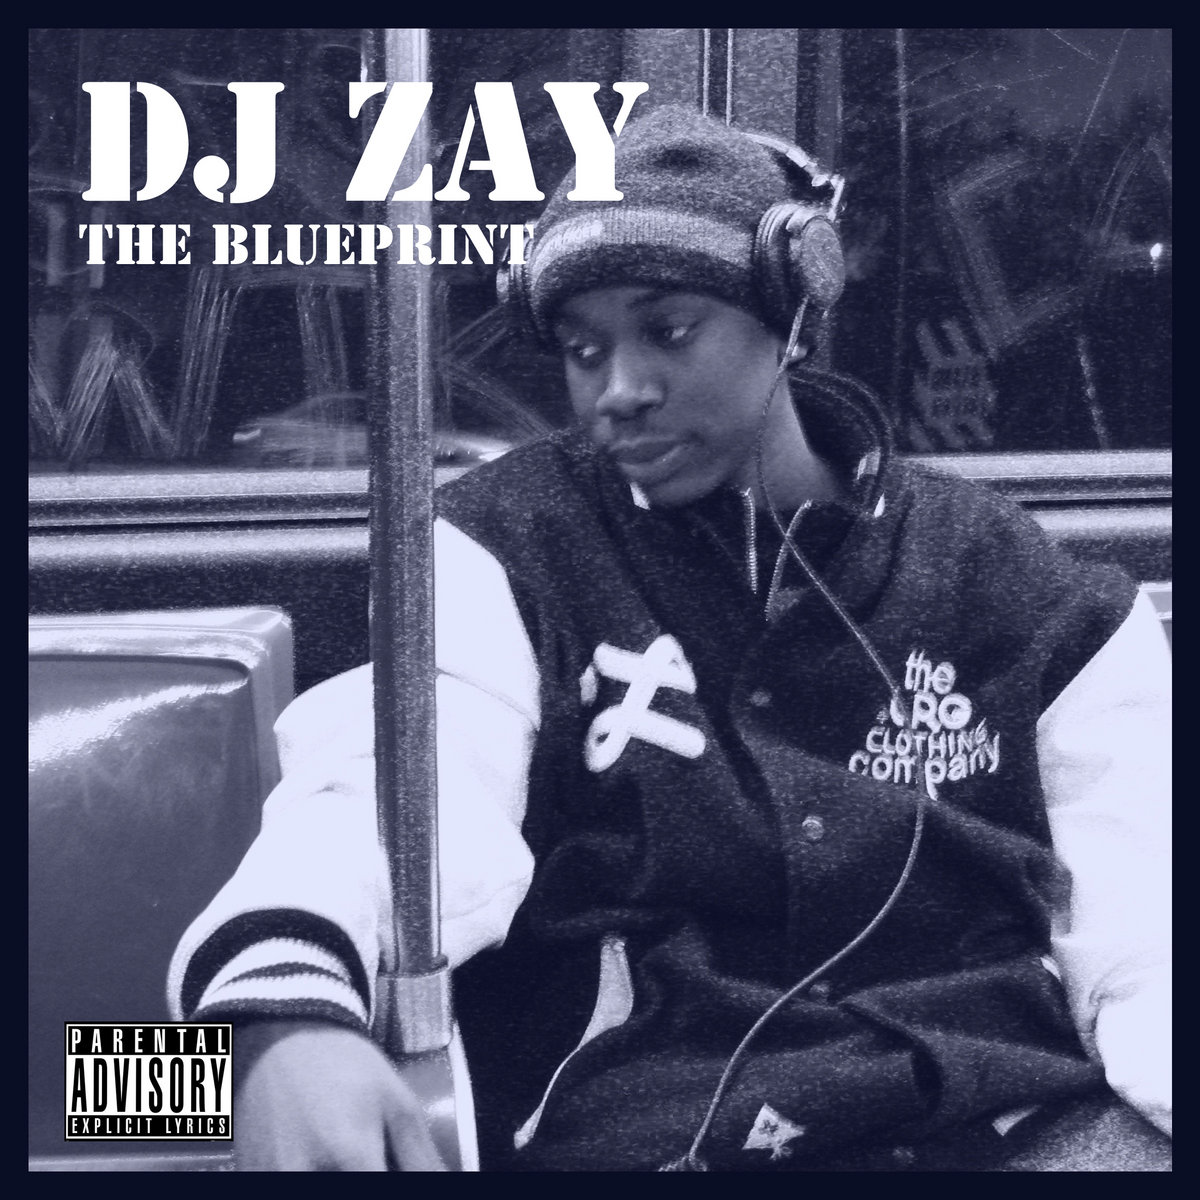 The blueprint a fair alternative dj zay by dj zay malvernweather Gallery